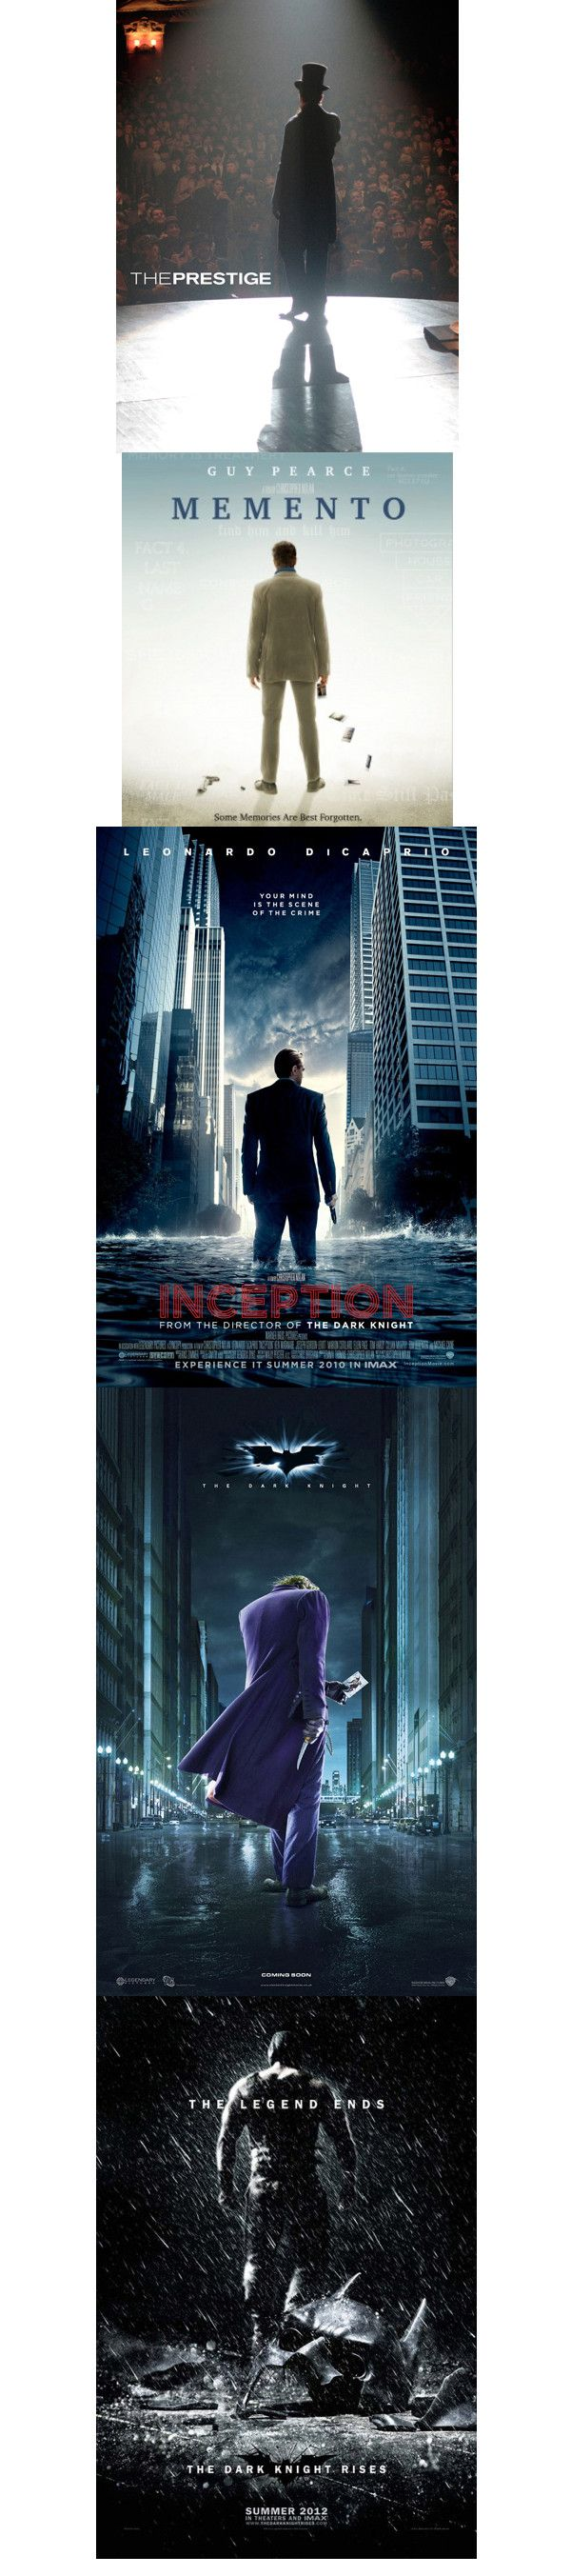 When Christopher Nolan directs, they sure know what kind of poster to make...